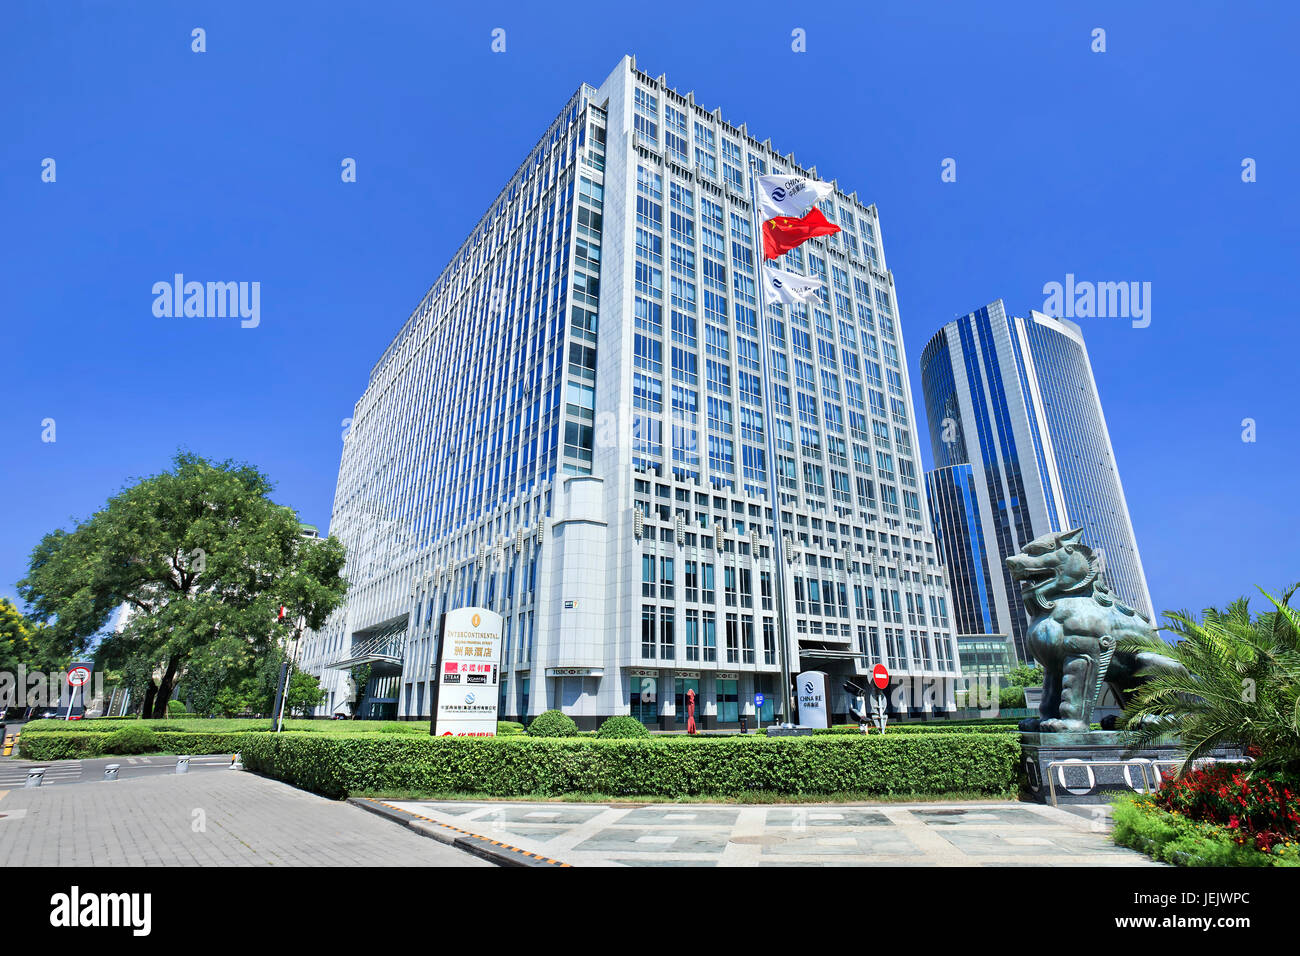 BEIJING-AUG. 24. Office building at Financial Street, China's most important financial center, China's Wall - Stock Image